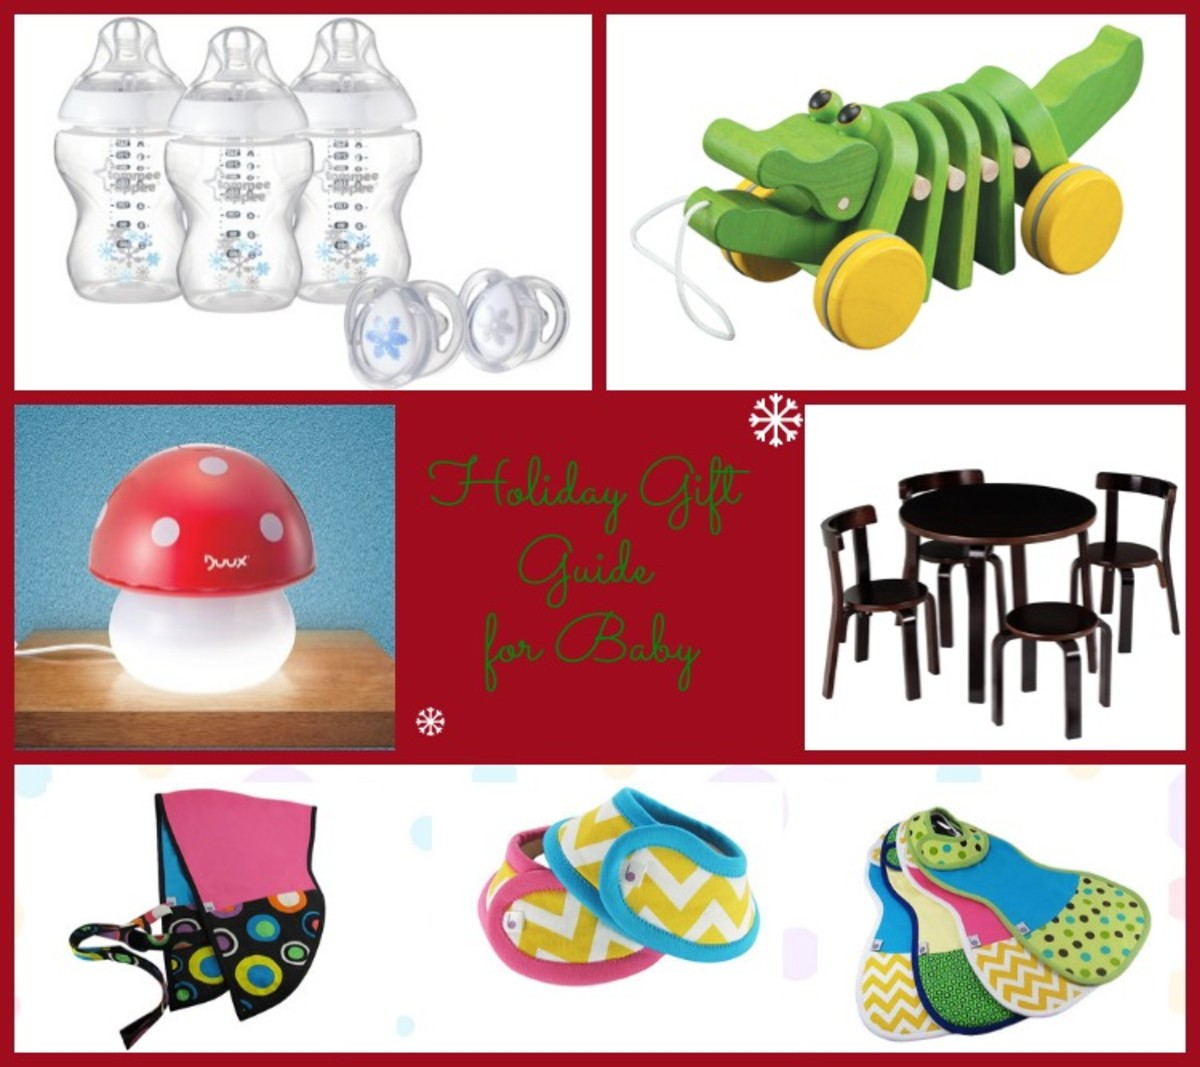 gifts for baby, svan, plan toys, tommee tippe, DUUX, bambini ware, wooden toys